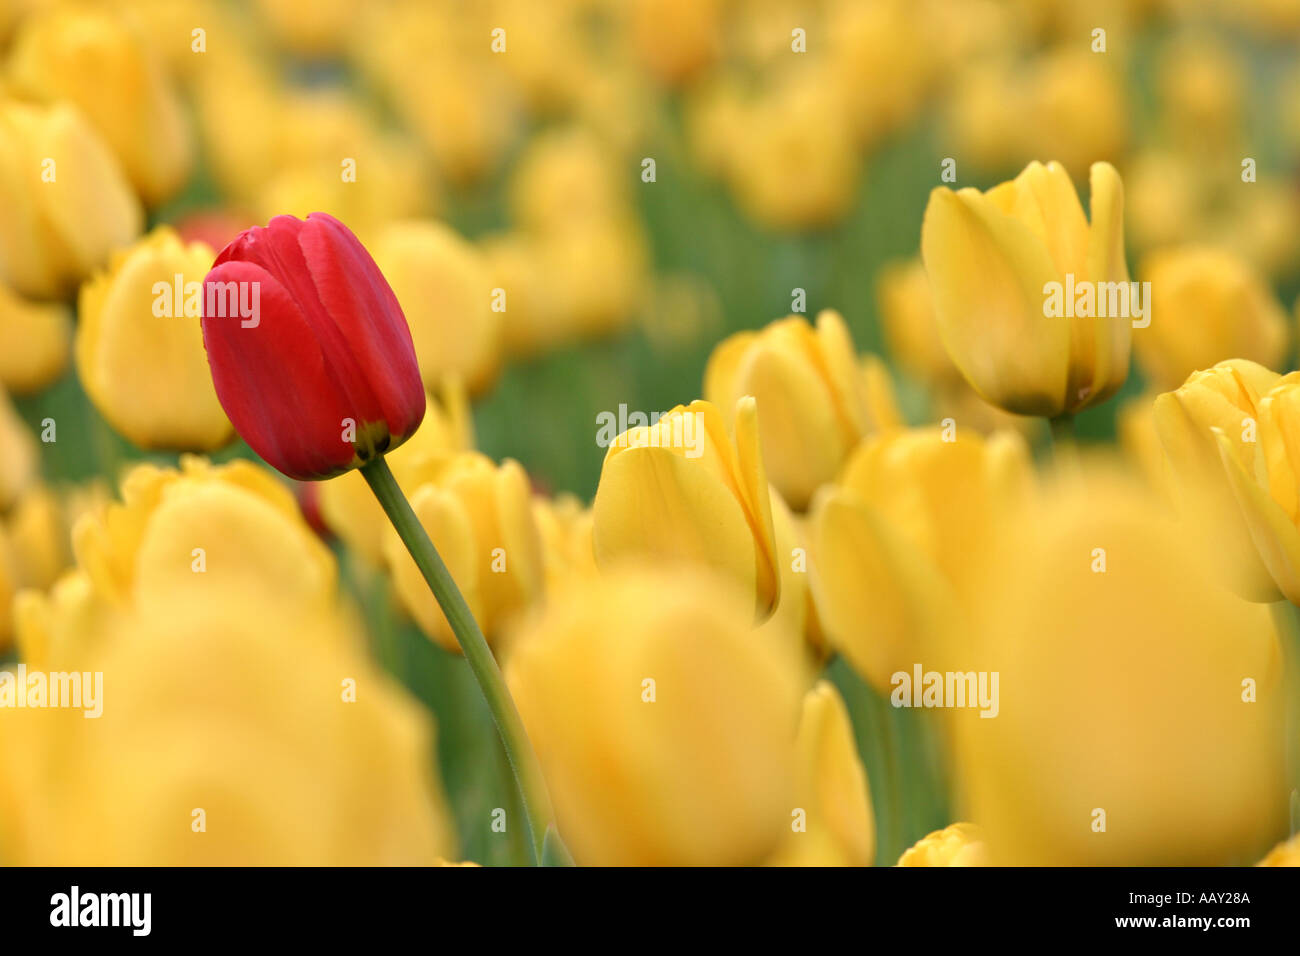 Against the tide a lone red tulip stands above a sea of yellow ones all bent in the wind - Stock Image